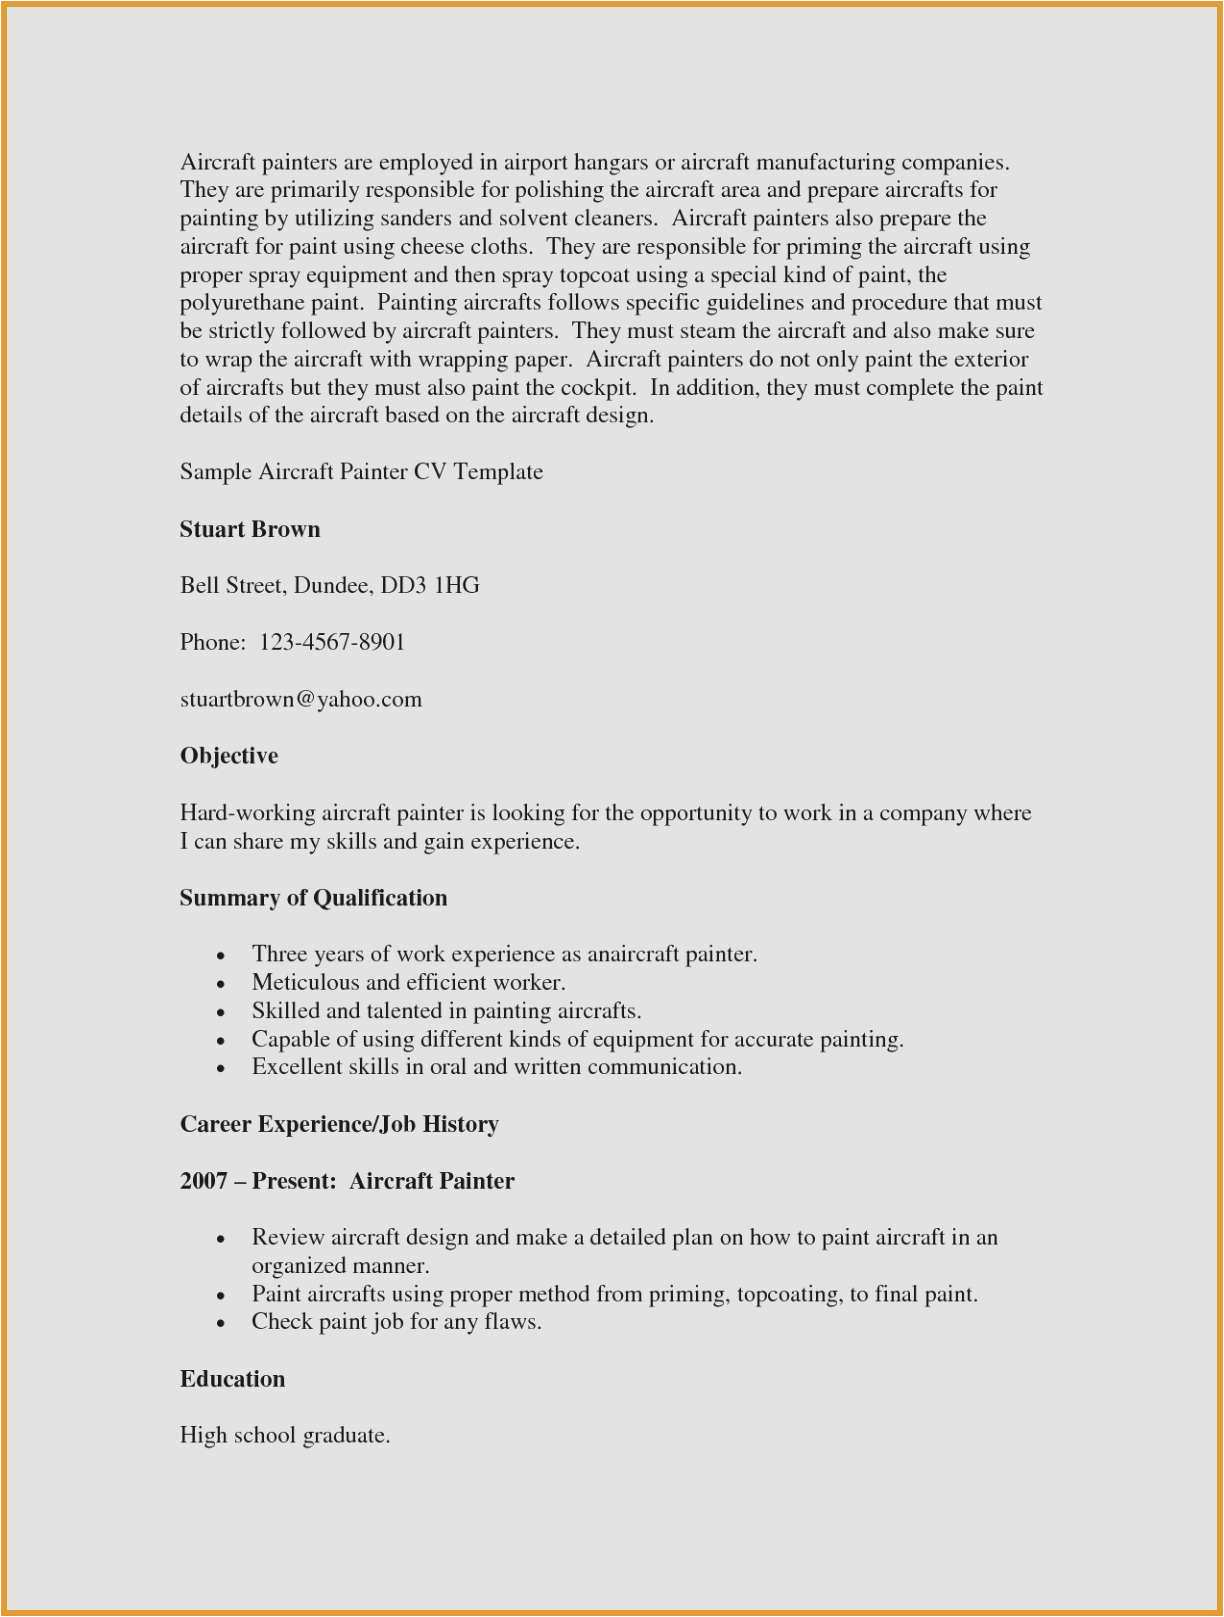 Resumes for Recent High School Graduates - 27 Free High School Resume Examples